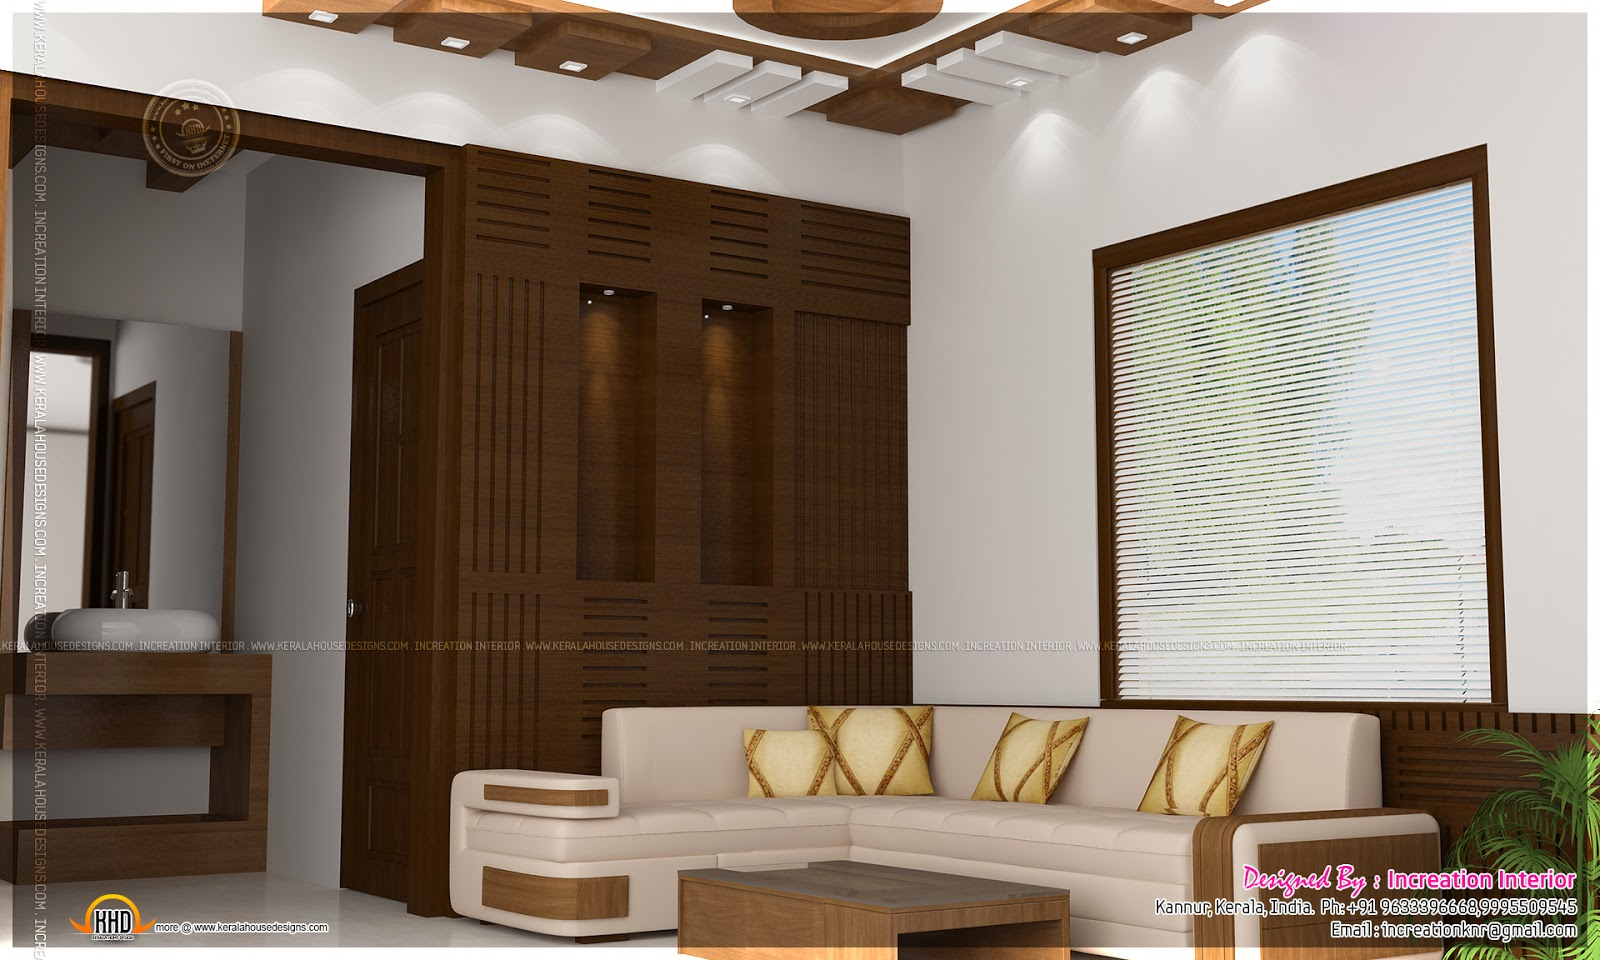 Interior design ideas by increation interior kerala for Interior designs photos for home